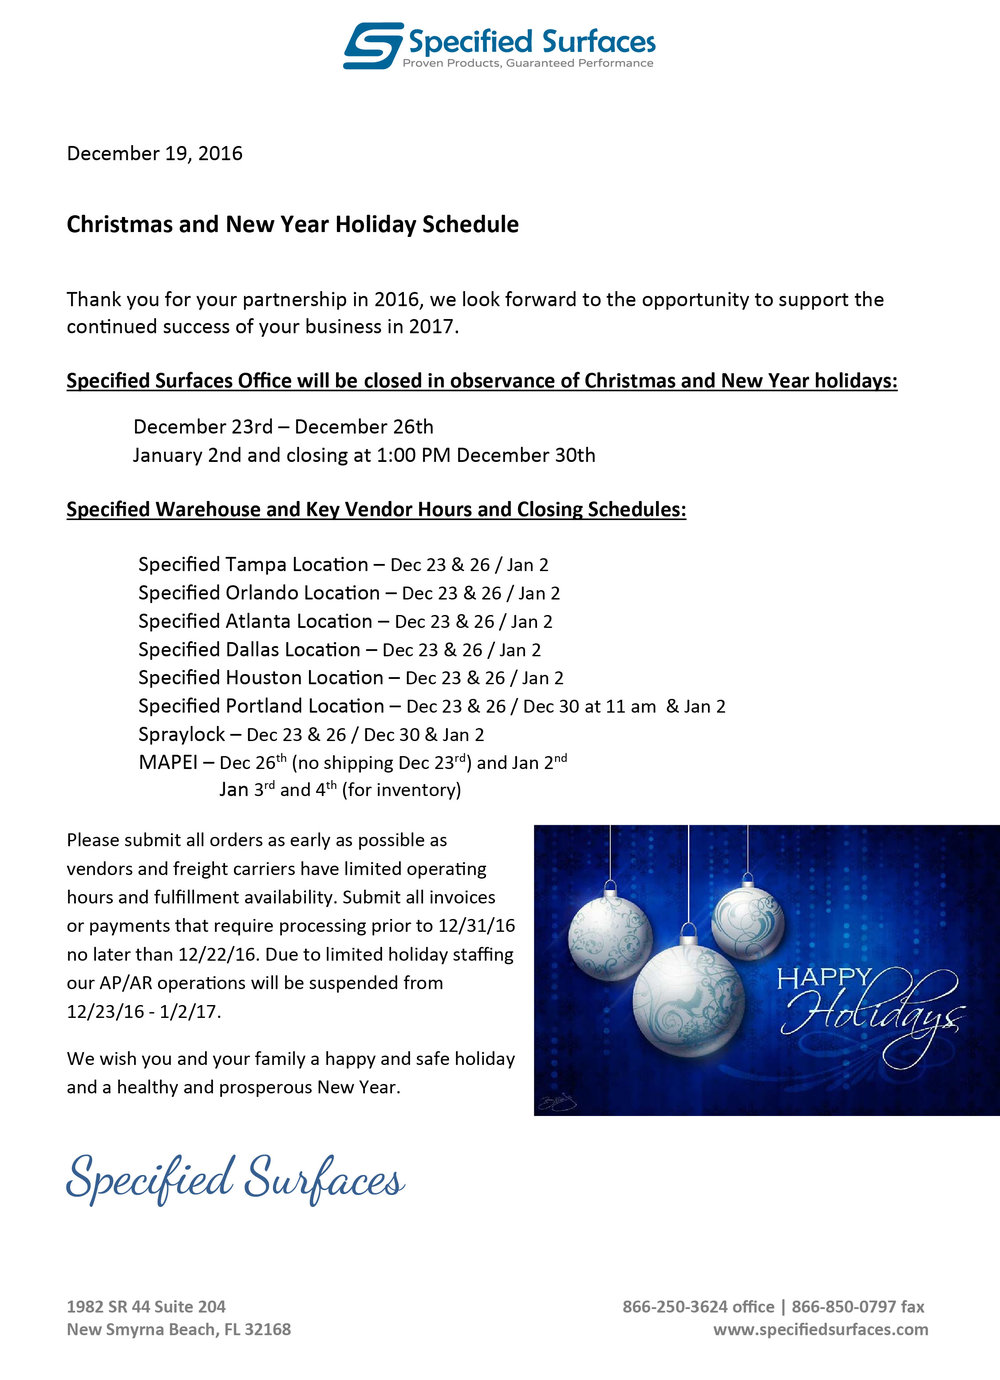 Specified-Surfaces-Holiday-Notice_12 19 16.jpg